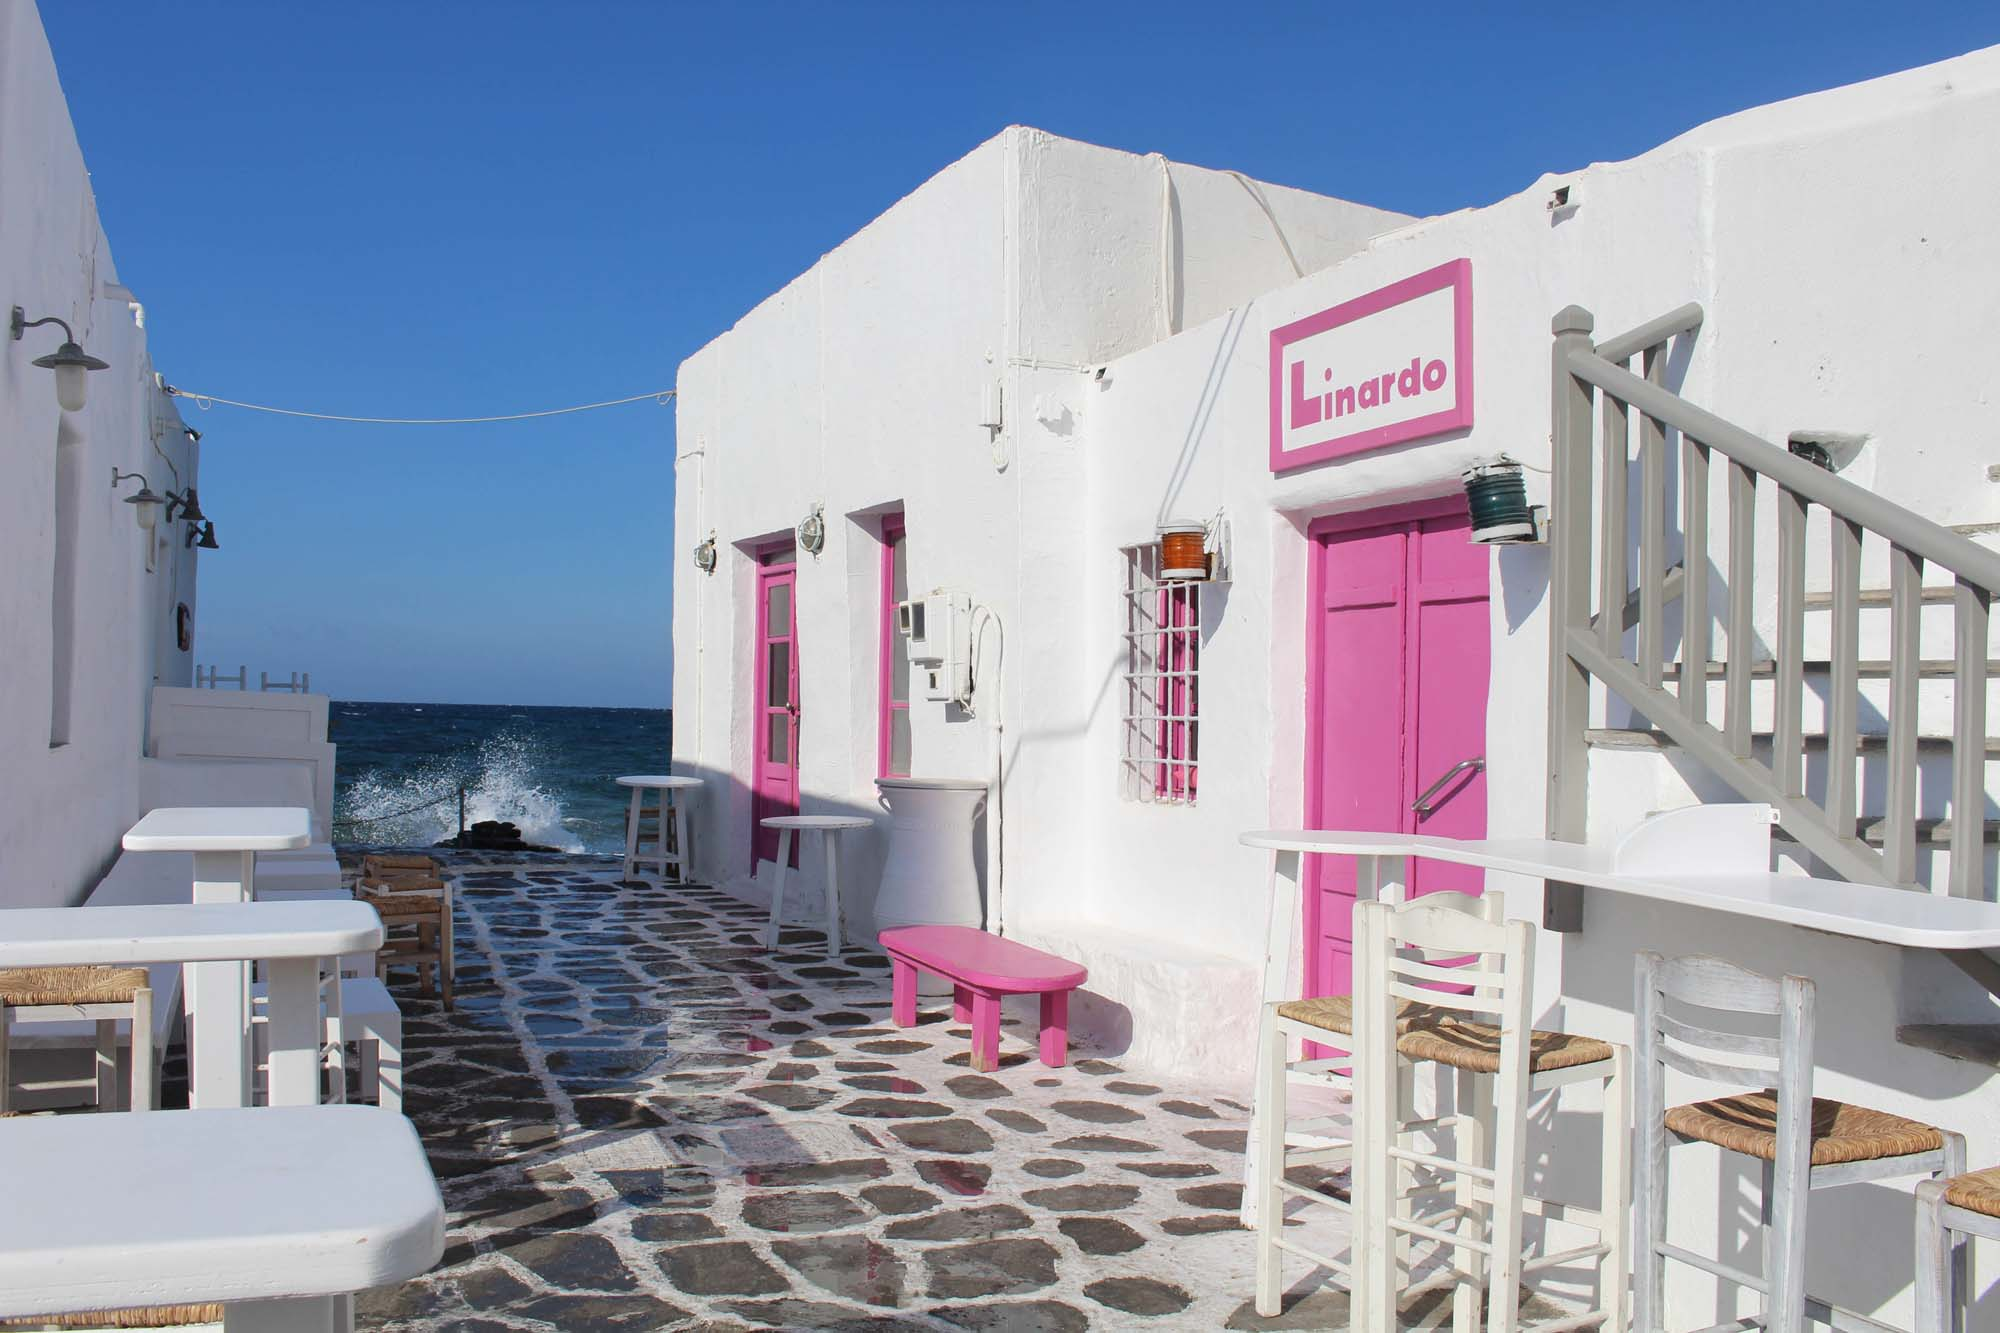 greece-paros-travel-linstantflo-29-sur-35